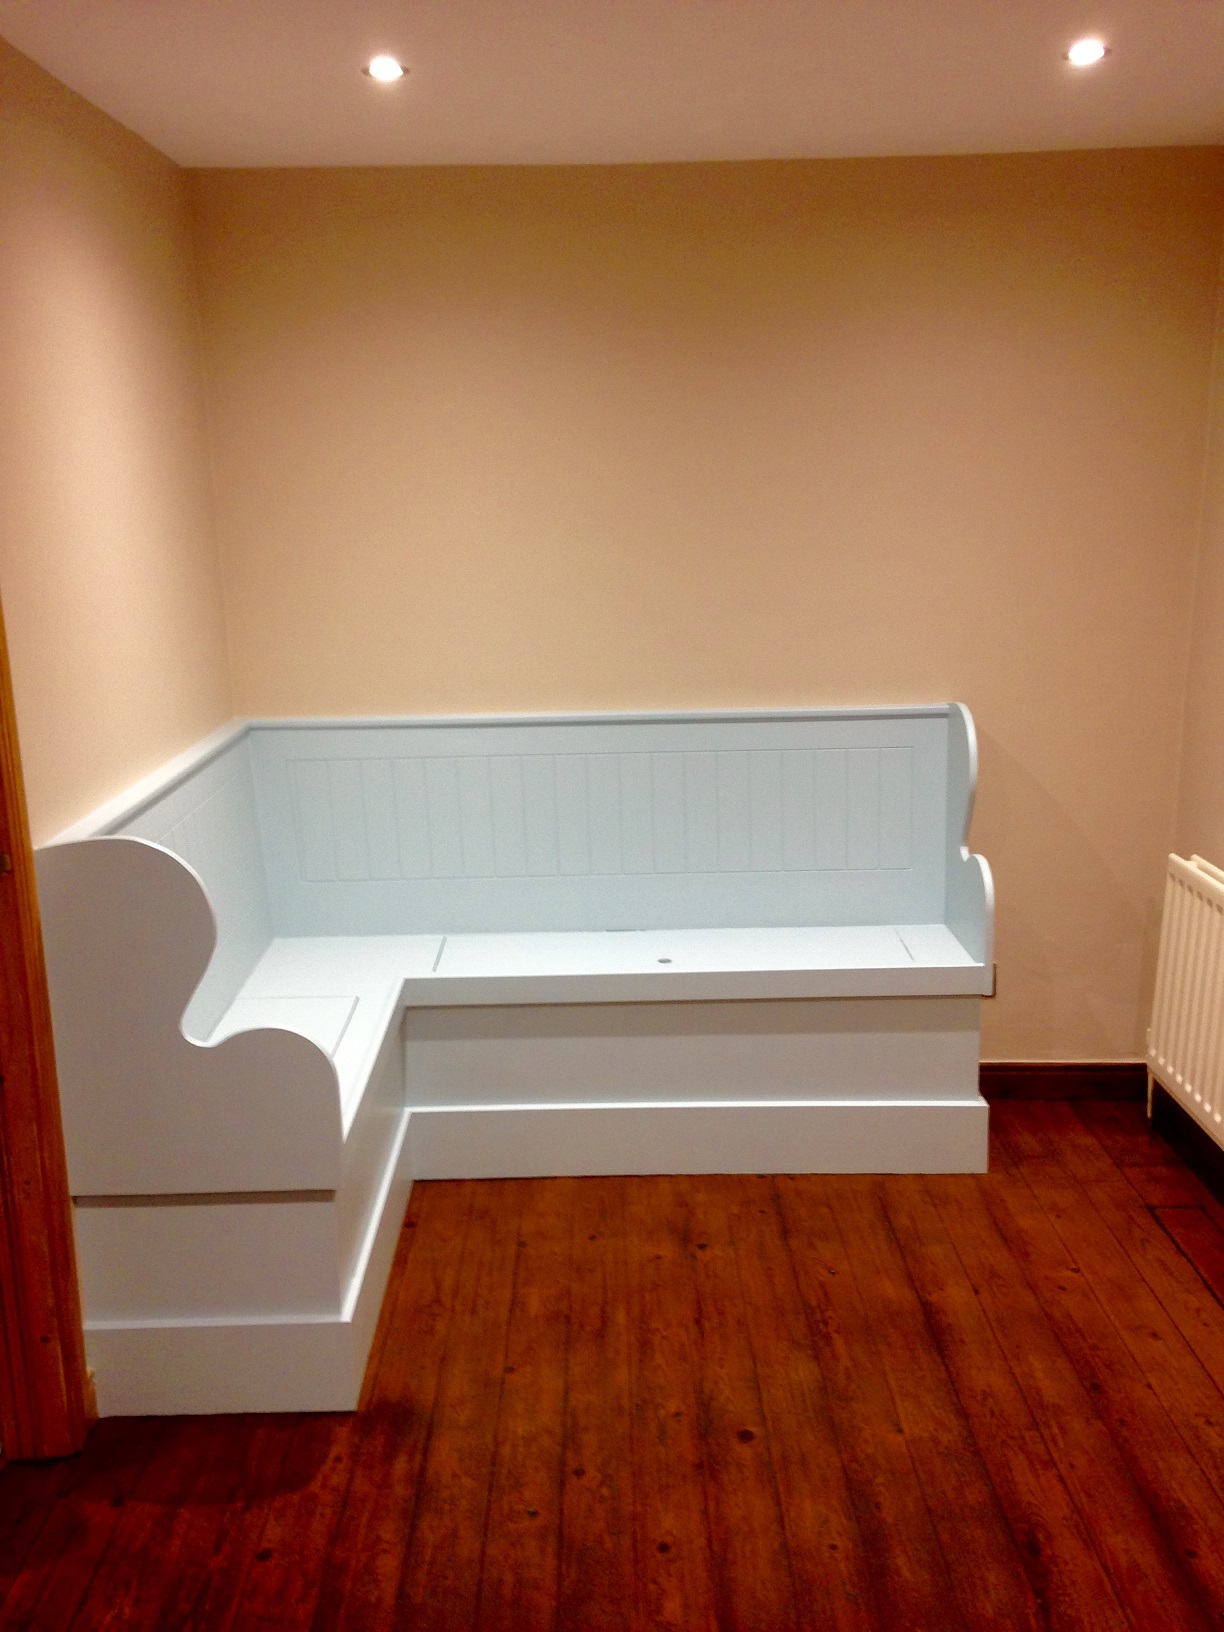 Bespoke bench seating to compliment new kitchen